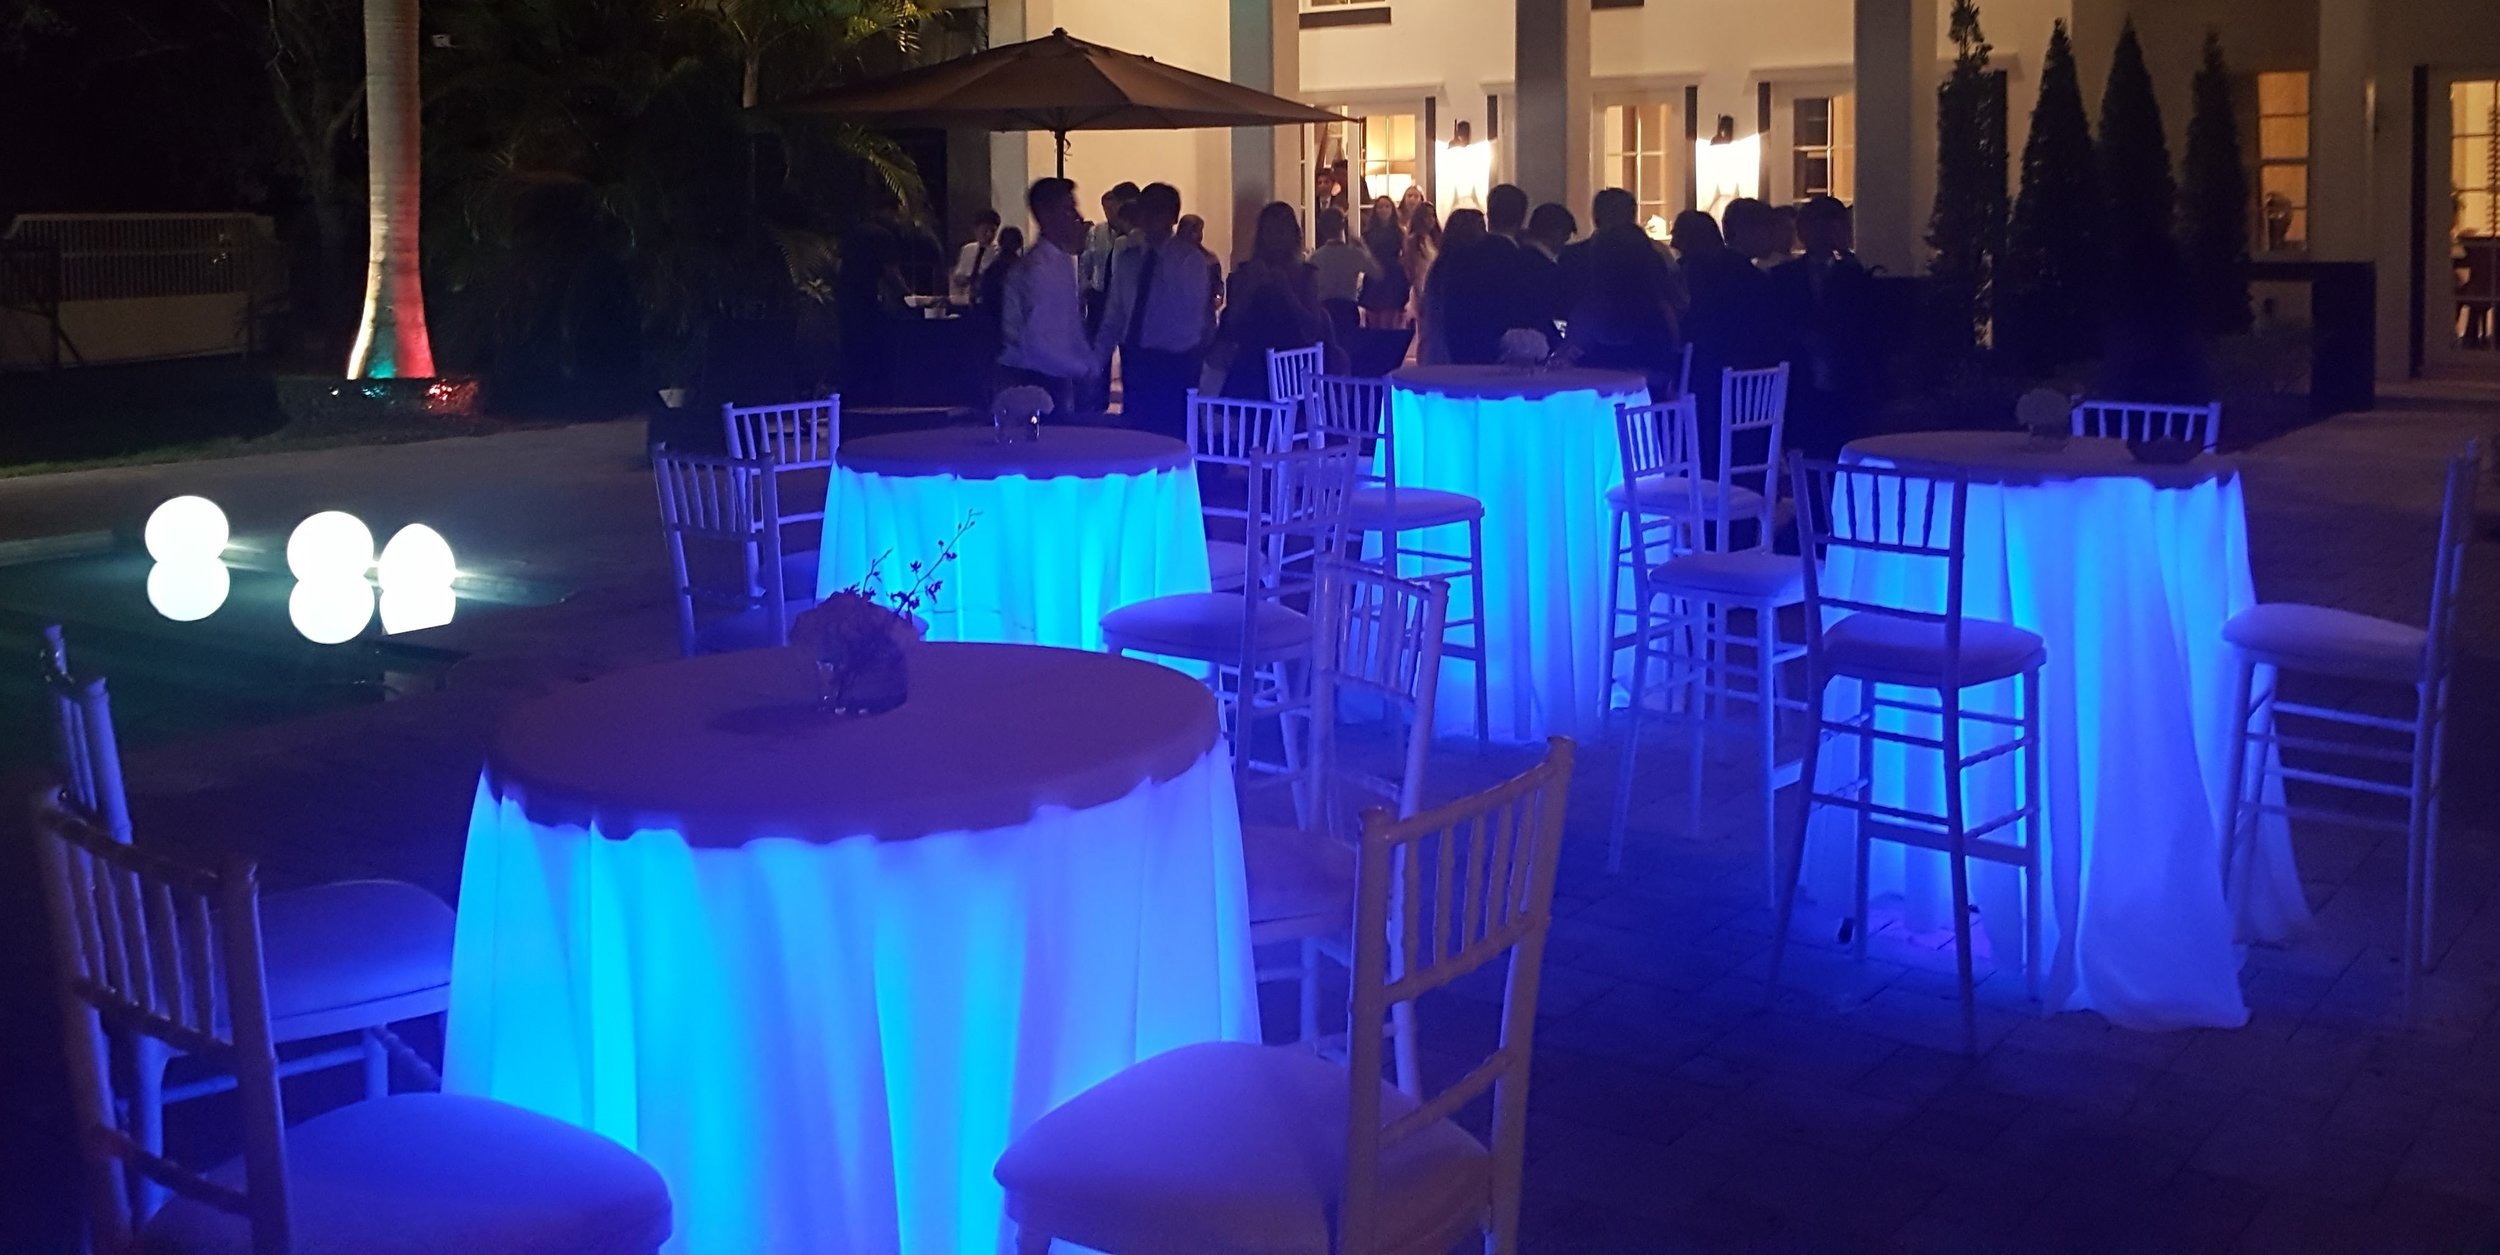 Led Under Tail Table Light Party Als Miami Event Ft Lauderdale Beach Jubilee Al